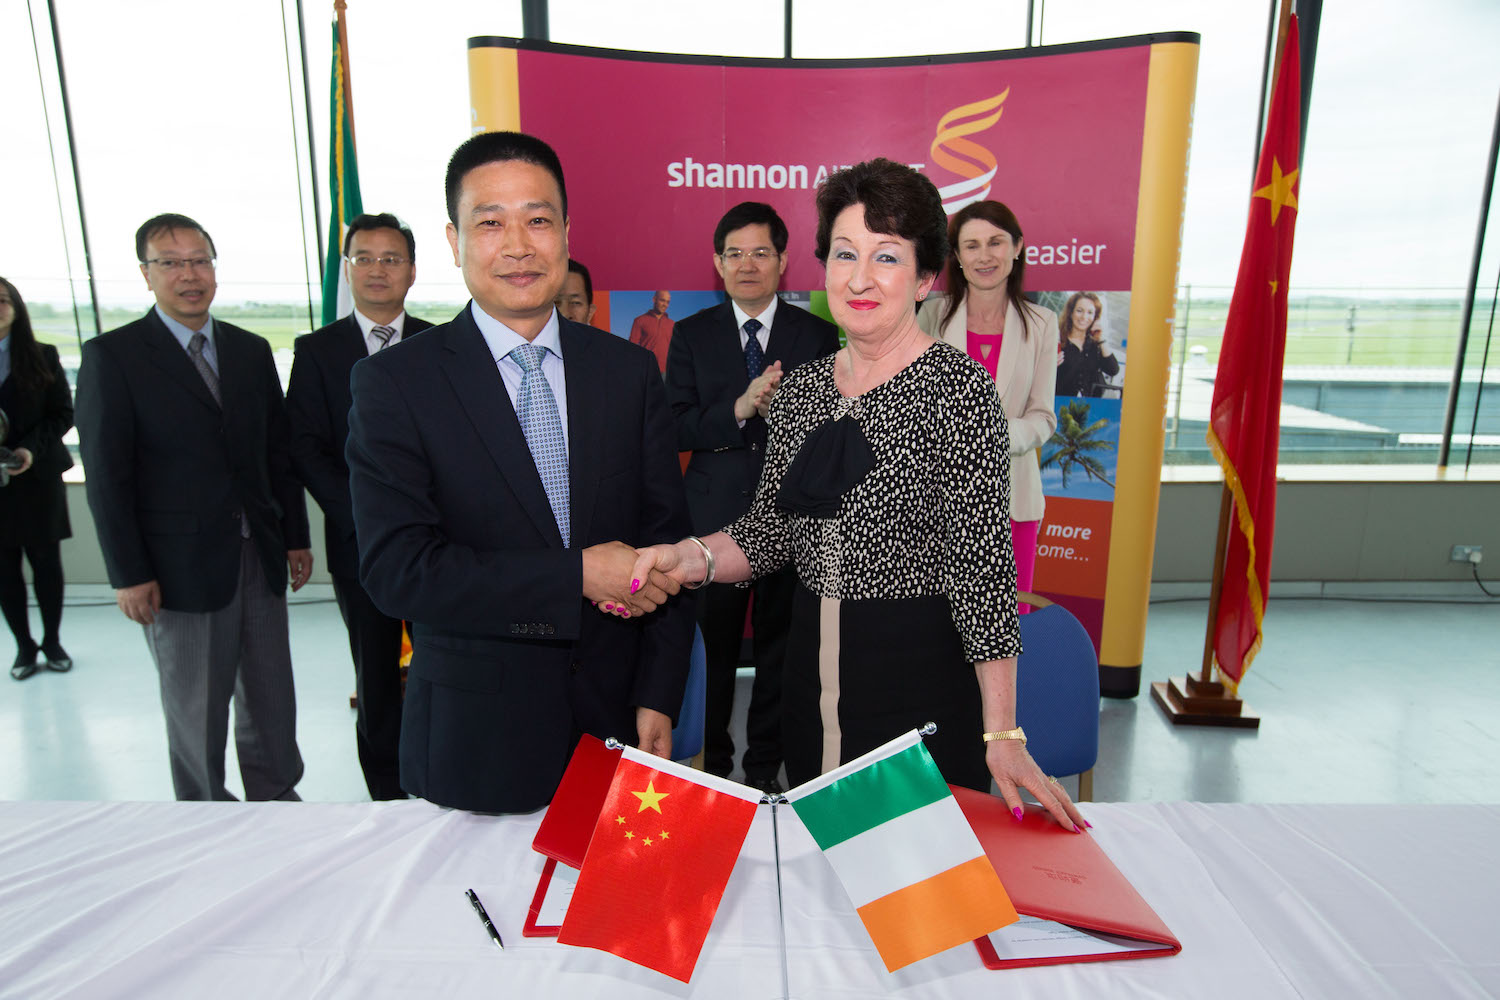 shannon group signs china partnership